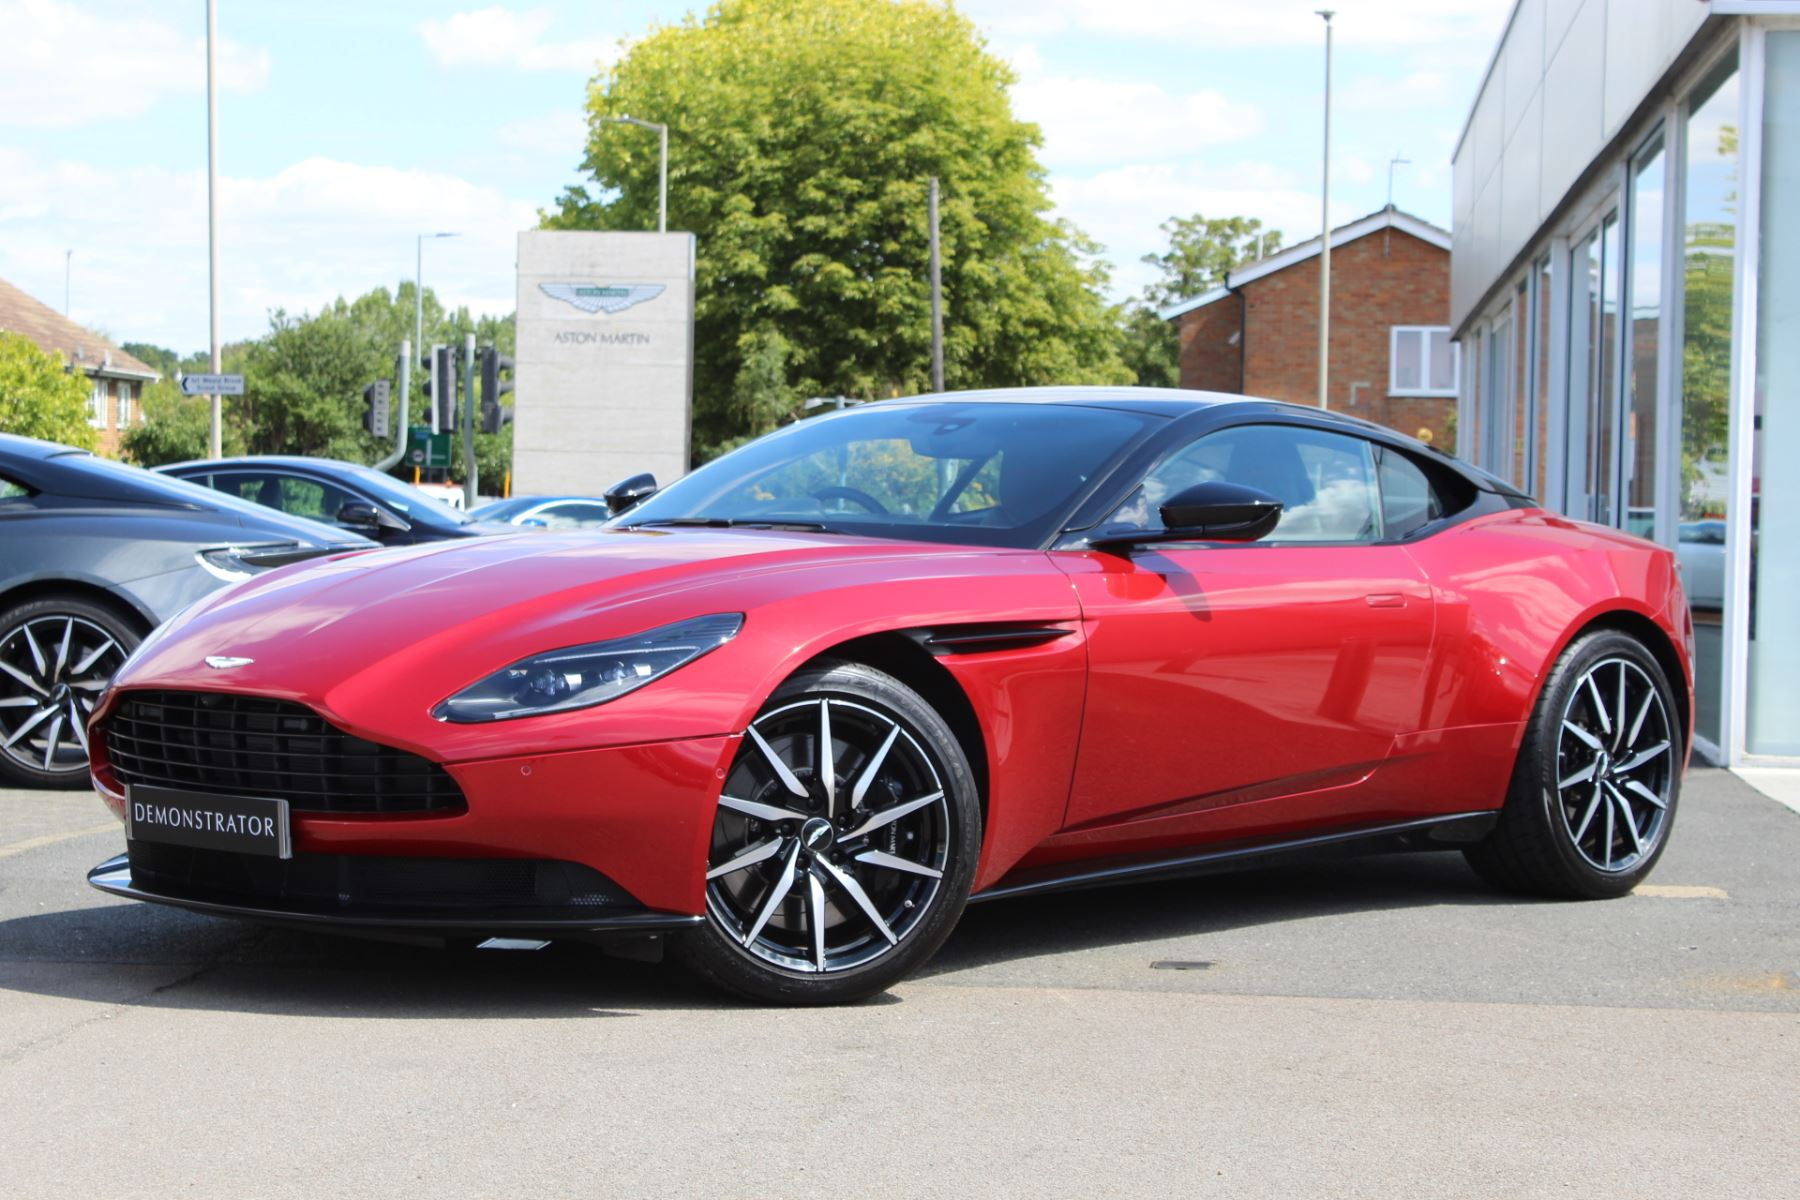 Aston Martin DB11 V8 2dr Touchtronic image 2